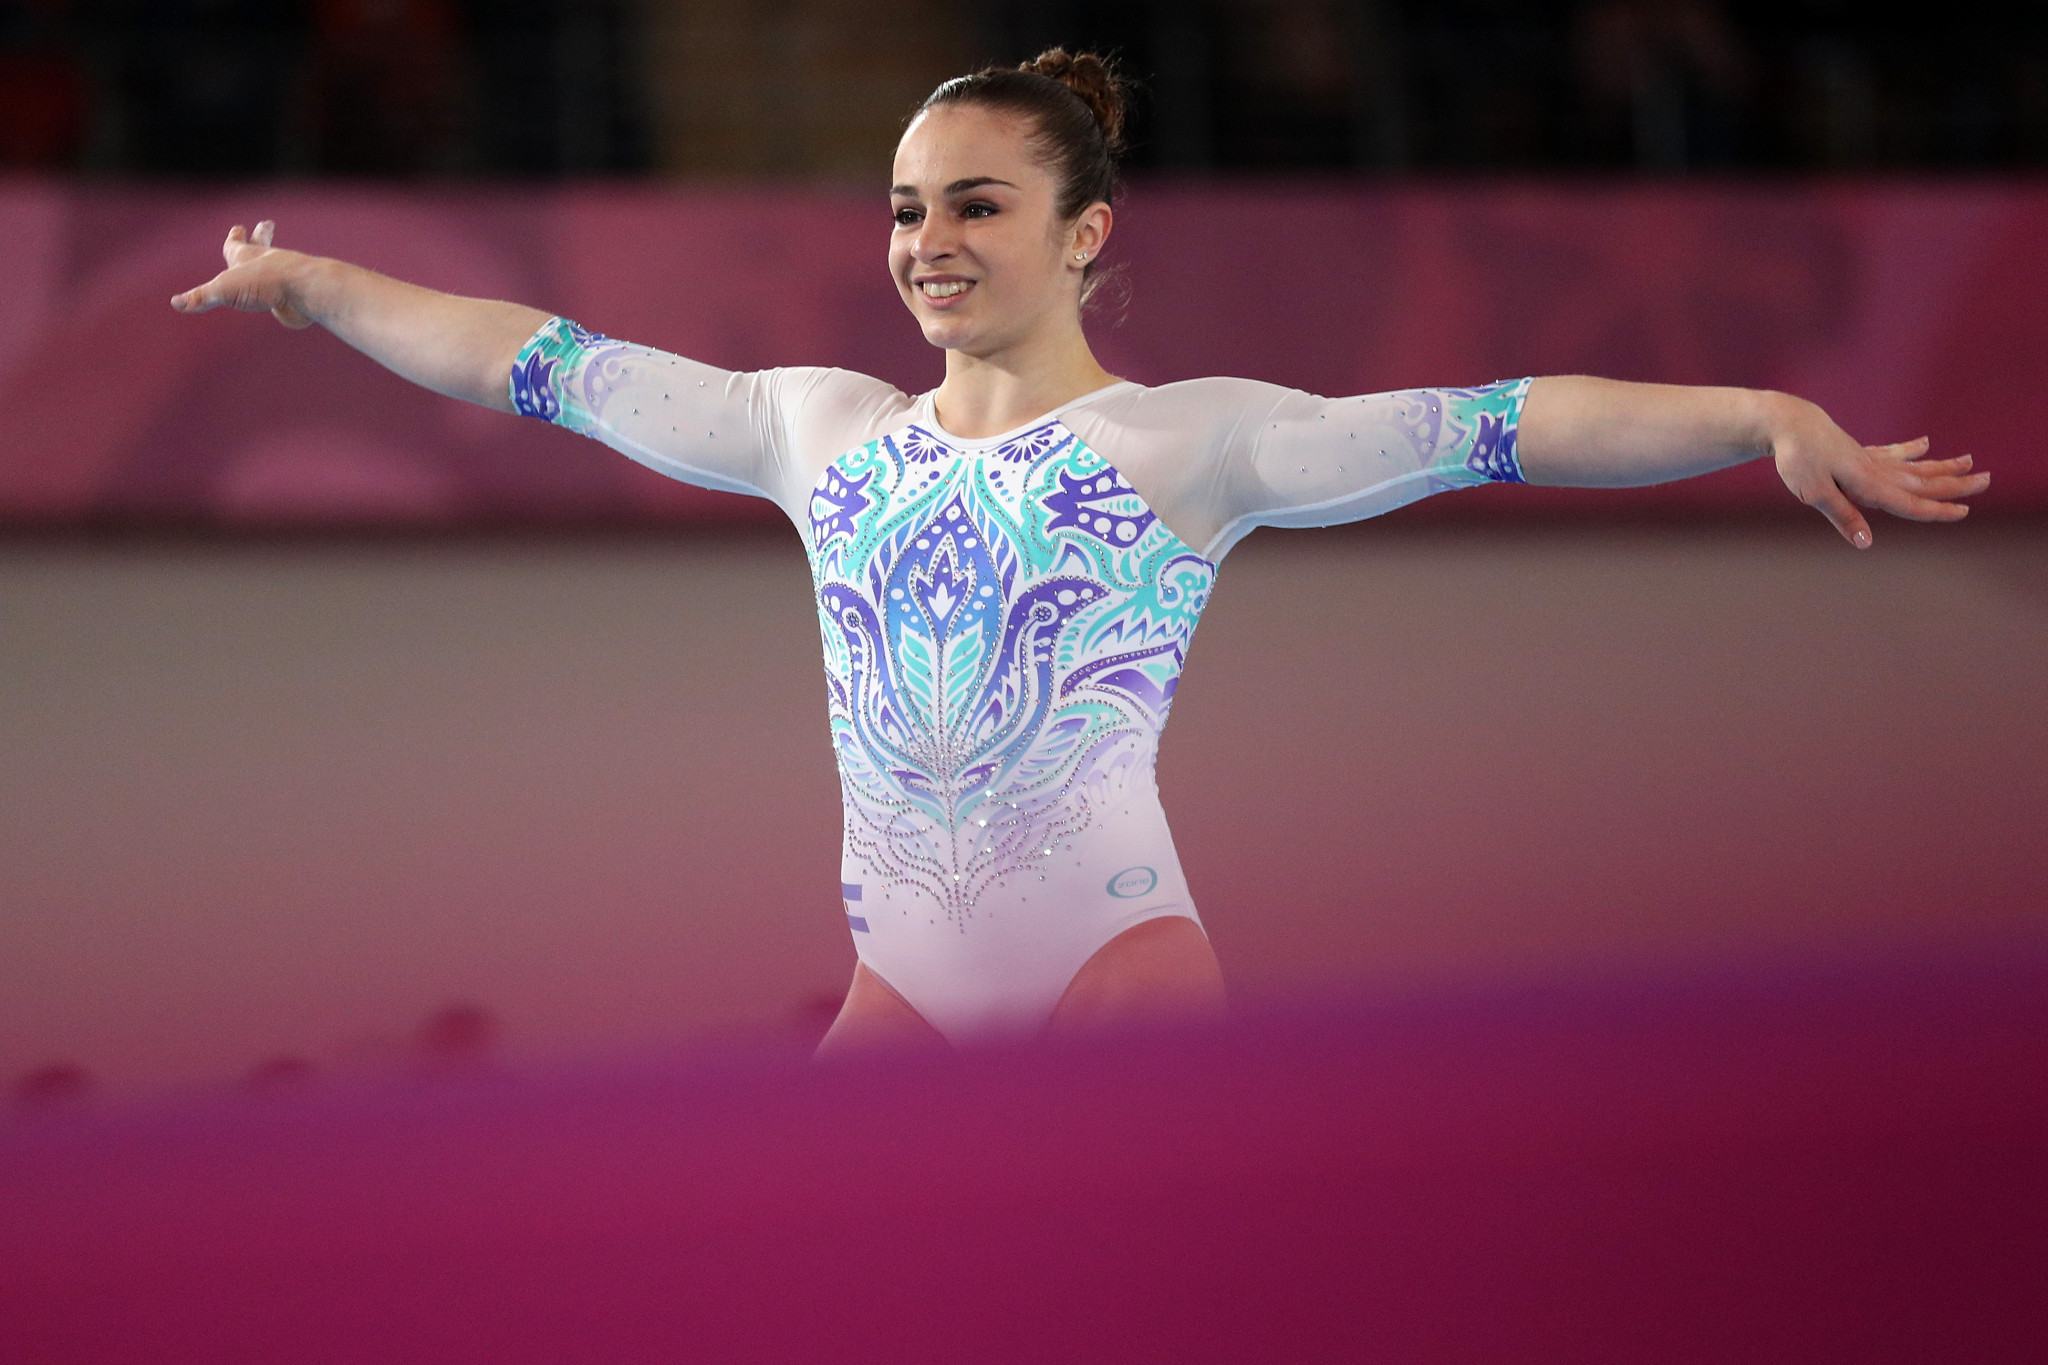 Argentina gymnast Dominici receives three-year doping ban